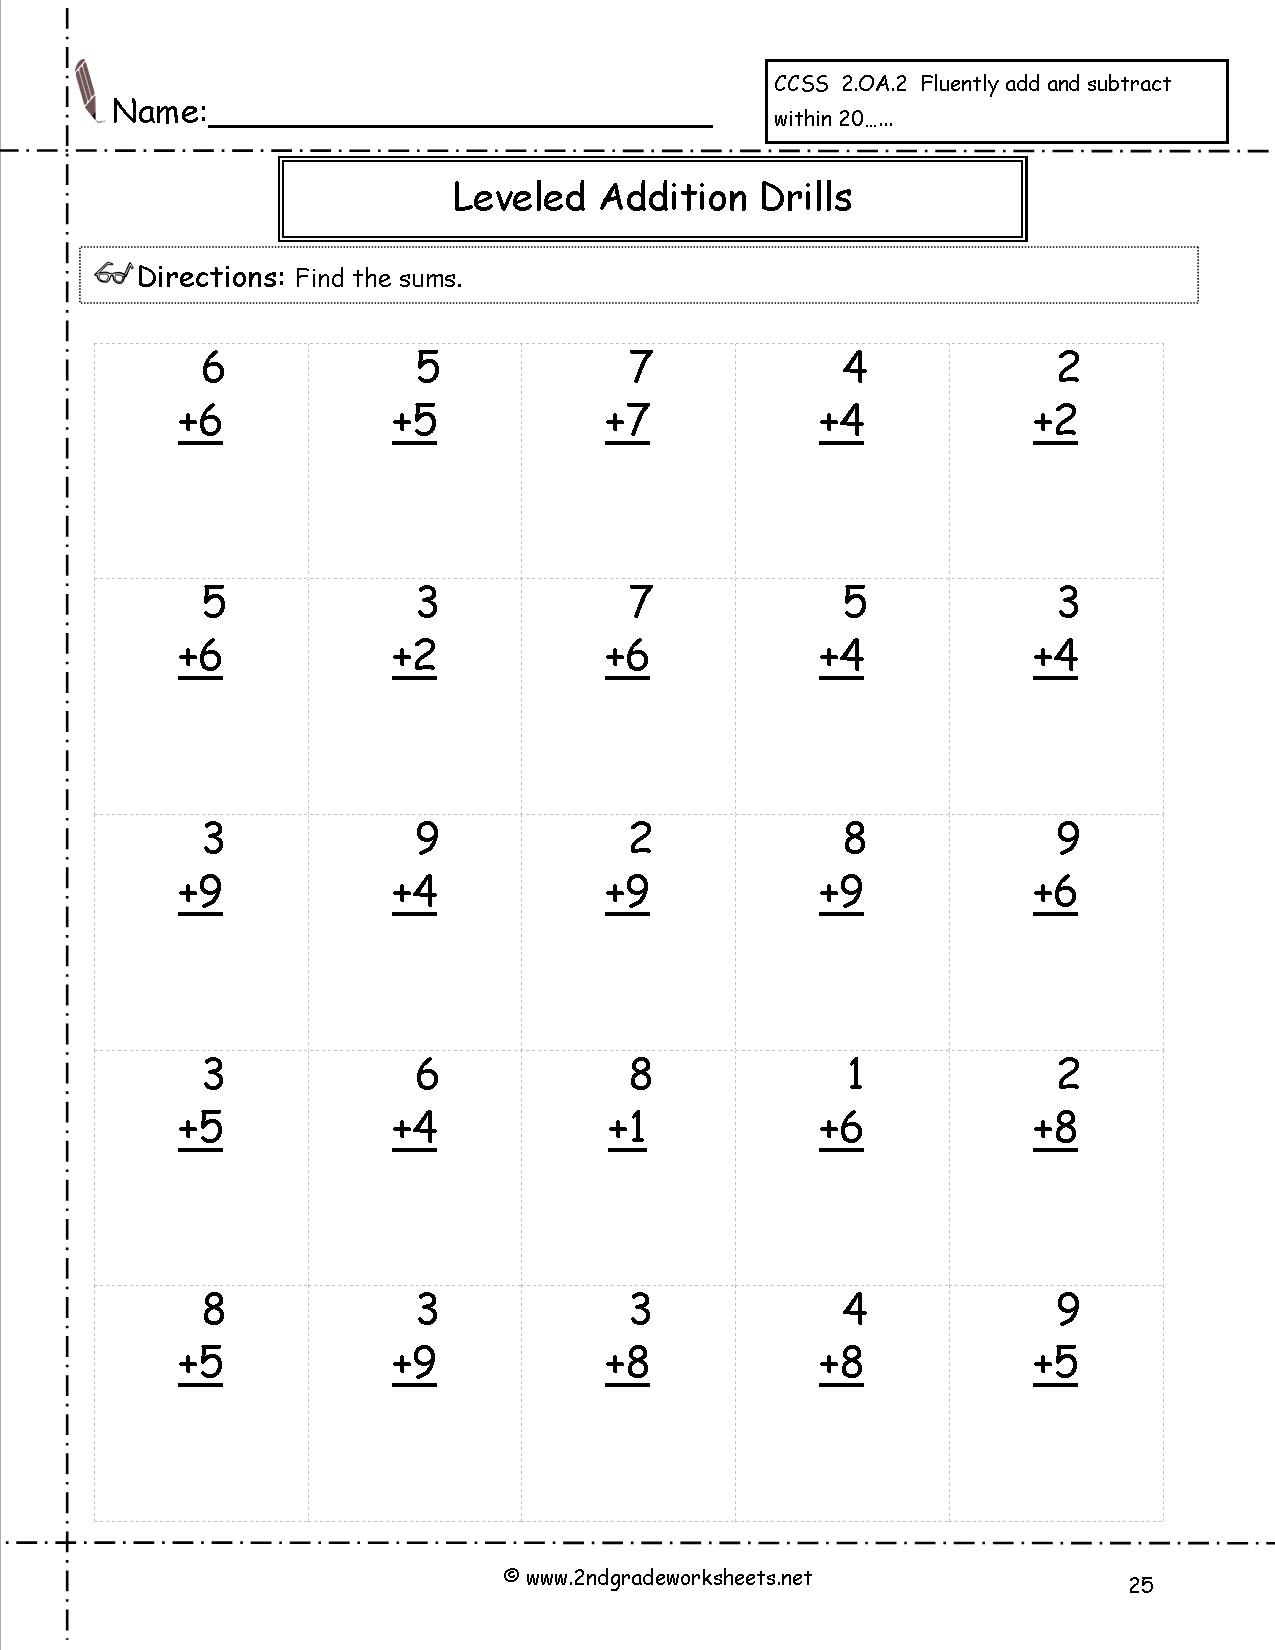 Free Math Worksheets And Printouts | Printable 2Nd Grade Math Worksheets